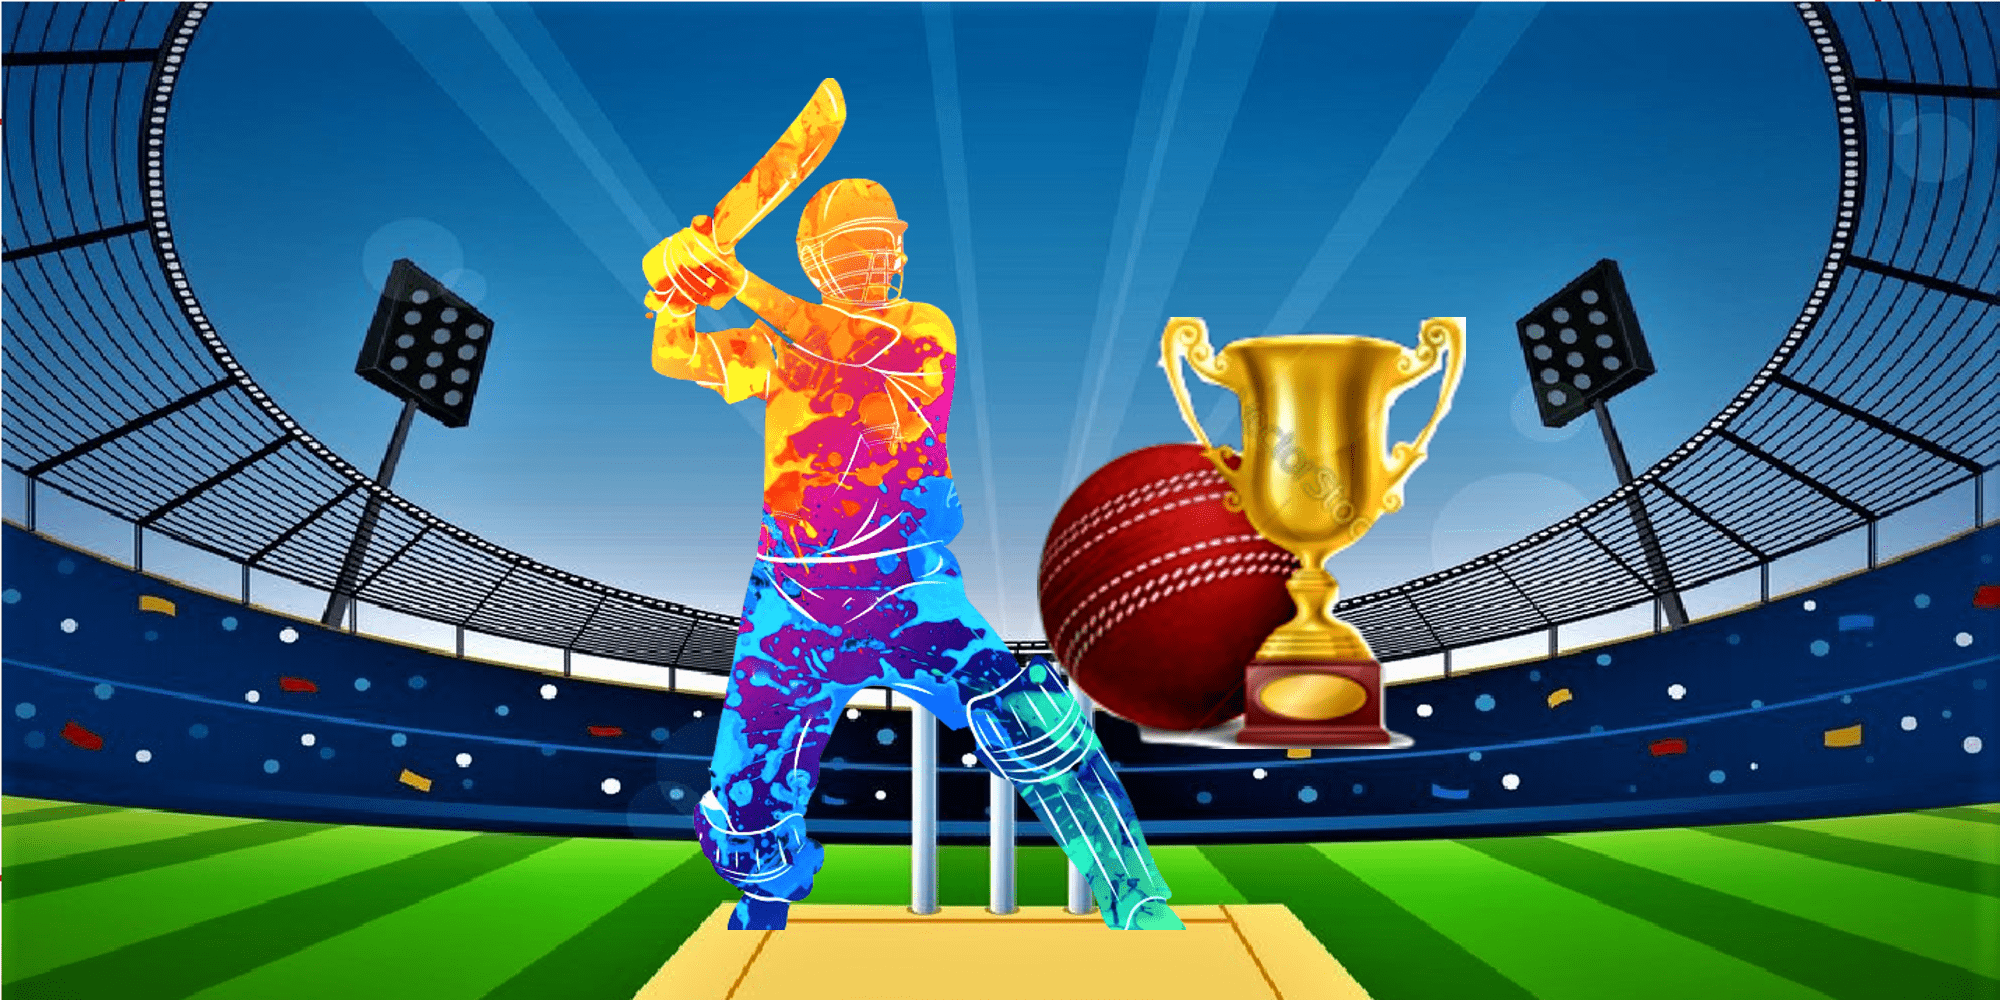 The popularity of fantasy online cricket game Fantasy games are the new trend that allows gamers to make their team and earn points based on the performance of players in the actual live game. The fantasy games give the user the actual feeling of reality and thus lead to excitement and thrill. There are various sports that one can choose to play a fantasy game, play cricket fantasy being one of them. Cricket is one of the most popular and loved sports in the world. The craze around this sport is unbelievable. In India cricket is much more than a sport. It is nothing less than a religion that brings all the people together. There is no denying the fact that the love of Indians for cricket is out of this world. Many people have in-depth knowledge about this sport. This knowledge can be put to great use through the advent of fantasy games. To enjoy fantasy cricket all one needs to create a team of a total of 11 players from both sides and follow certain rules for selecting the players. Many people believe this fantasy game is the game of luck but actually, the vast knowledge of cricket is what is needed. The popularity of fantasy games is sky-rocketing because of various reasons. Some of these reasons are mentioned below: Cash Prizes: One of the main reasons for its surge in popularity is the amazing cash rewards one can earn through this game. All one needs to do is put the understanding of cricket to proper use and thus form your dream team based on it. Various other factors such as type of pitch, weather, etc. also play a crucial role in deciding which players are suitable for the game. If all the right decisions are taken in forming the team, then there are higher chances of earning amazing rewards. This fantasy online game not only allows the user to enjoy the game with full thrill and excitement but also enables you to earn some side cash. Thus it is indeed a win-win situation. Fair Chance: There is no restriction of any sort on who can play this fantasy game. An